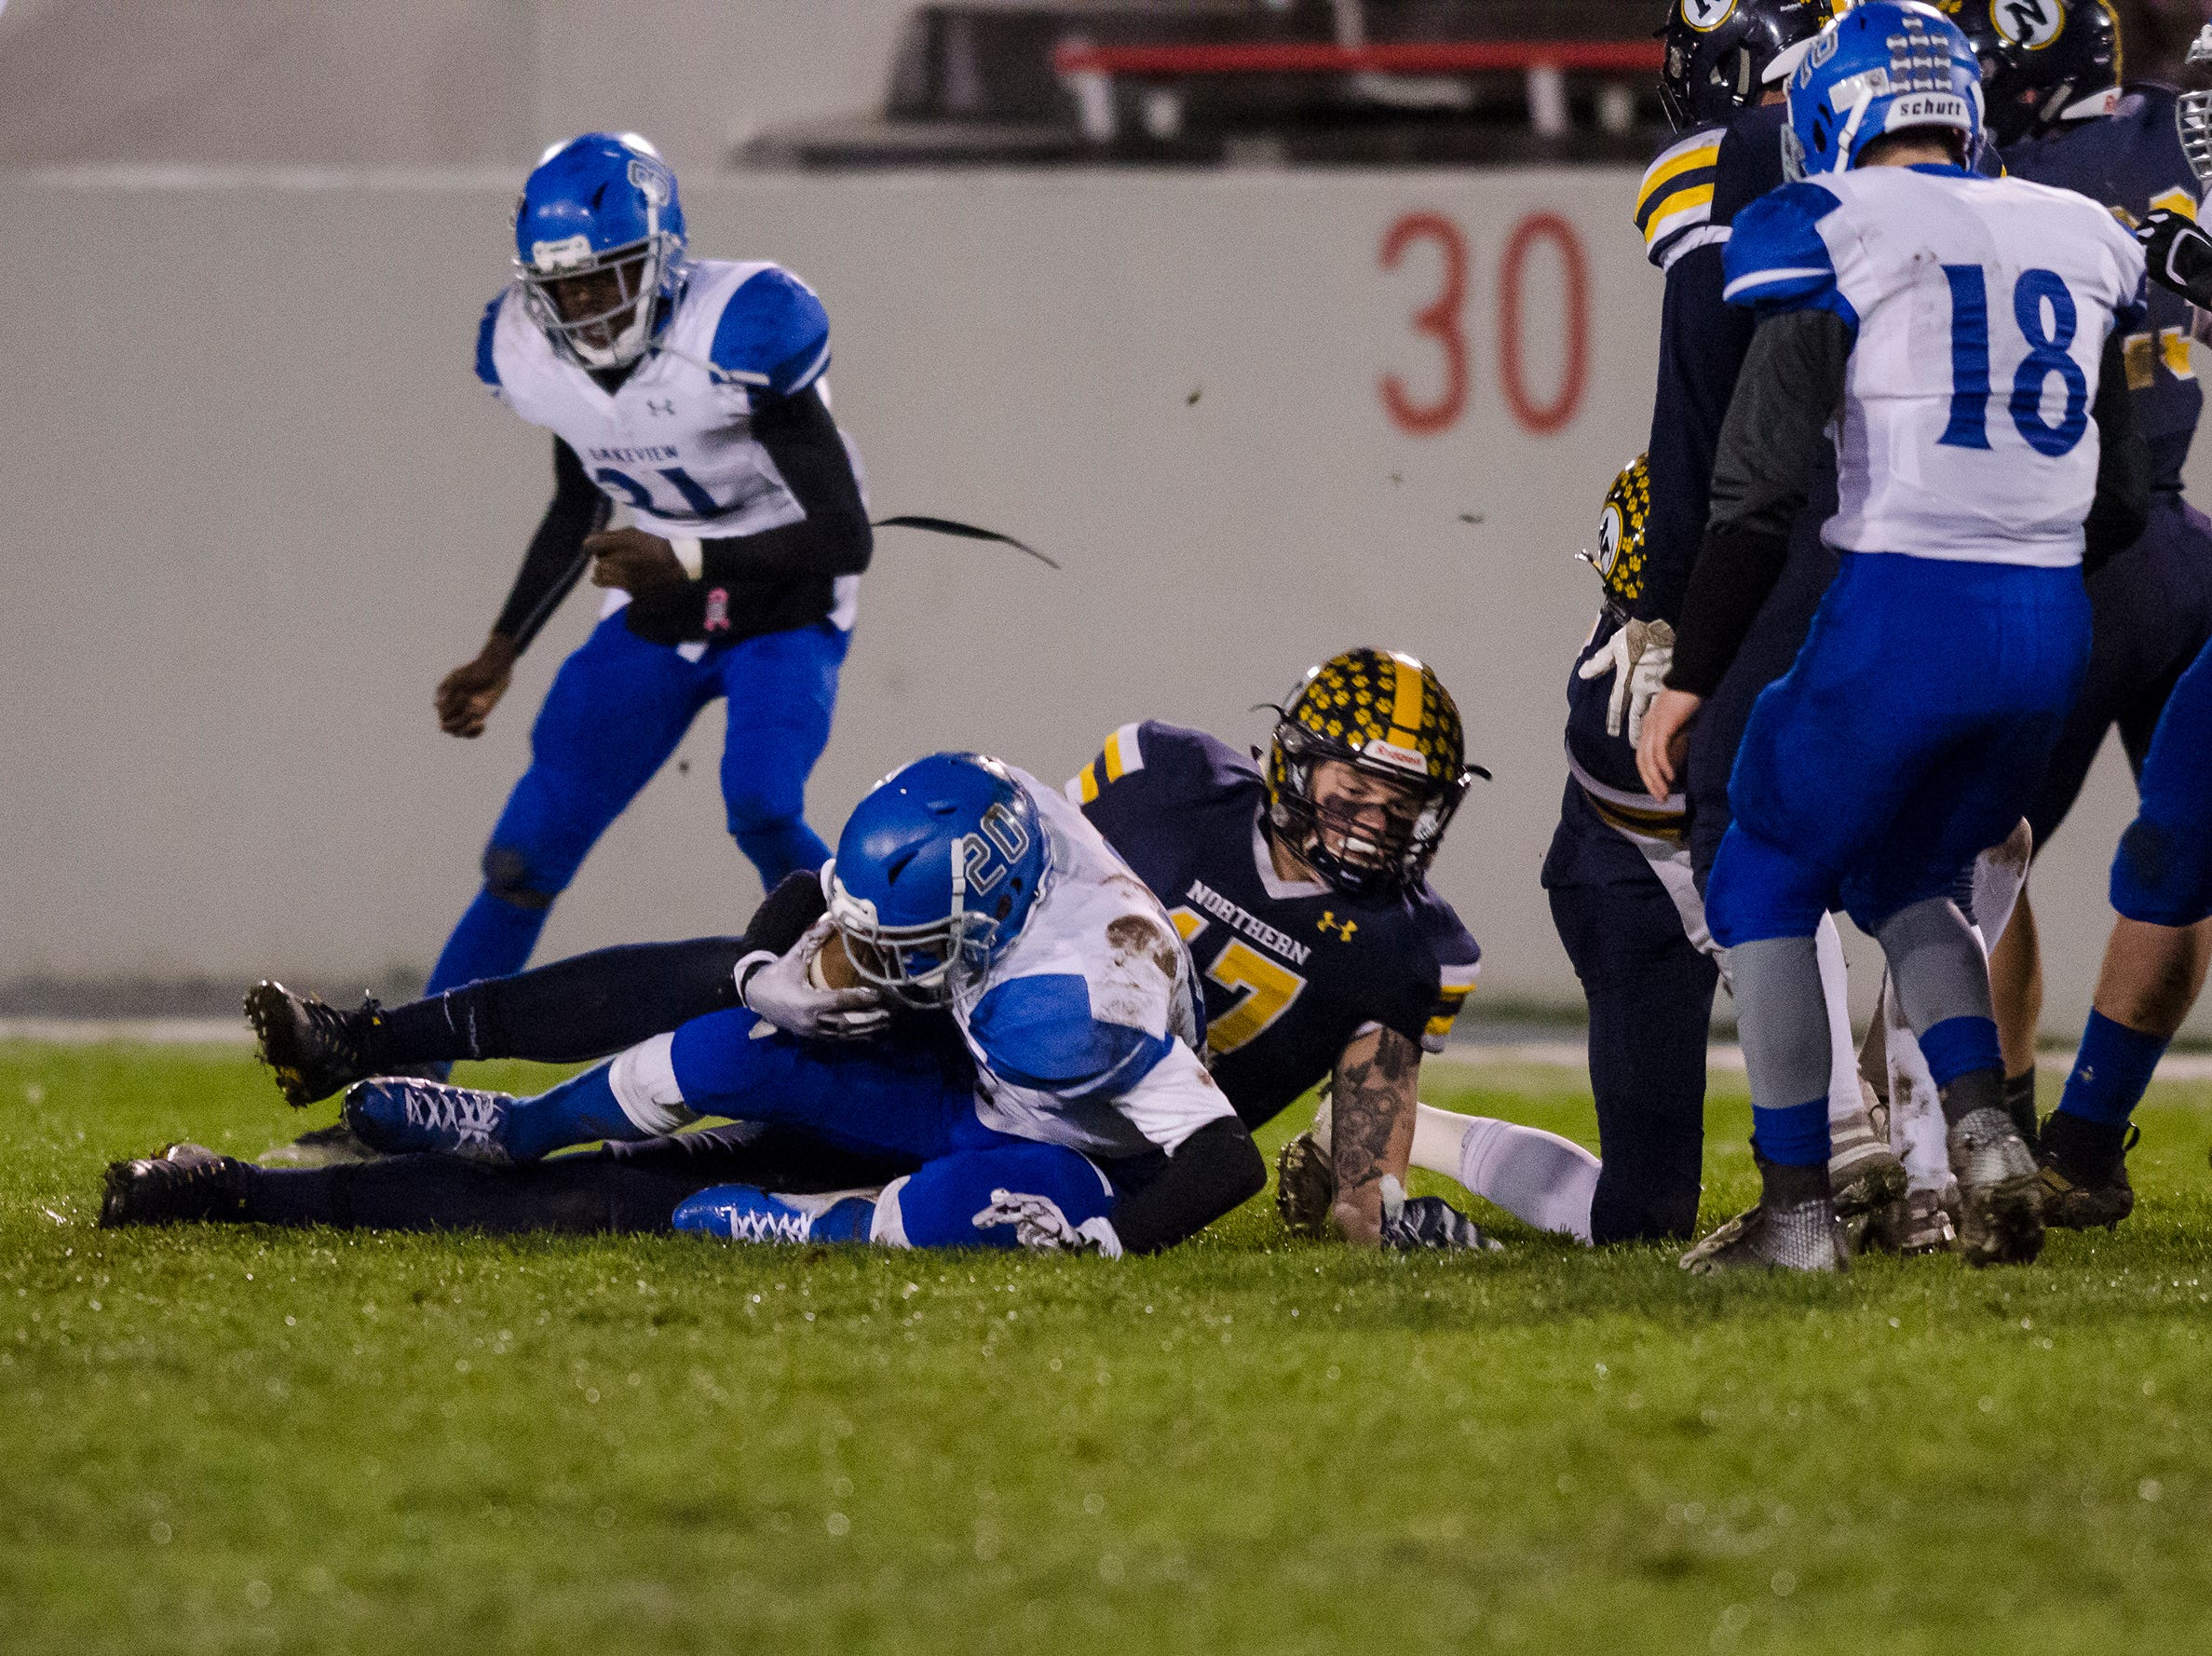 Port Huron Northern High School tight end Braiden McGregor (17) tackles St. Clair Shores Lakeview's Evan Rochon as he runs with the football in the first quarter of their Division 2 finals match Friday, Nov. 2, 2018 at Memorial Stadium in Port Huron.